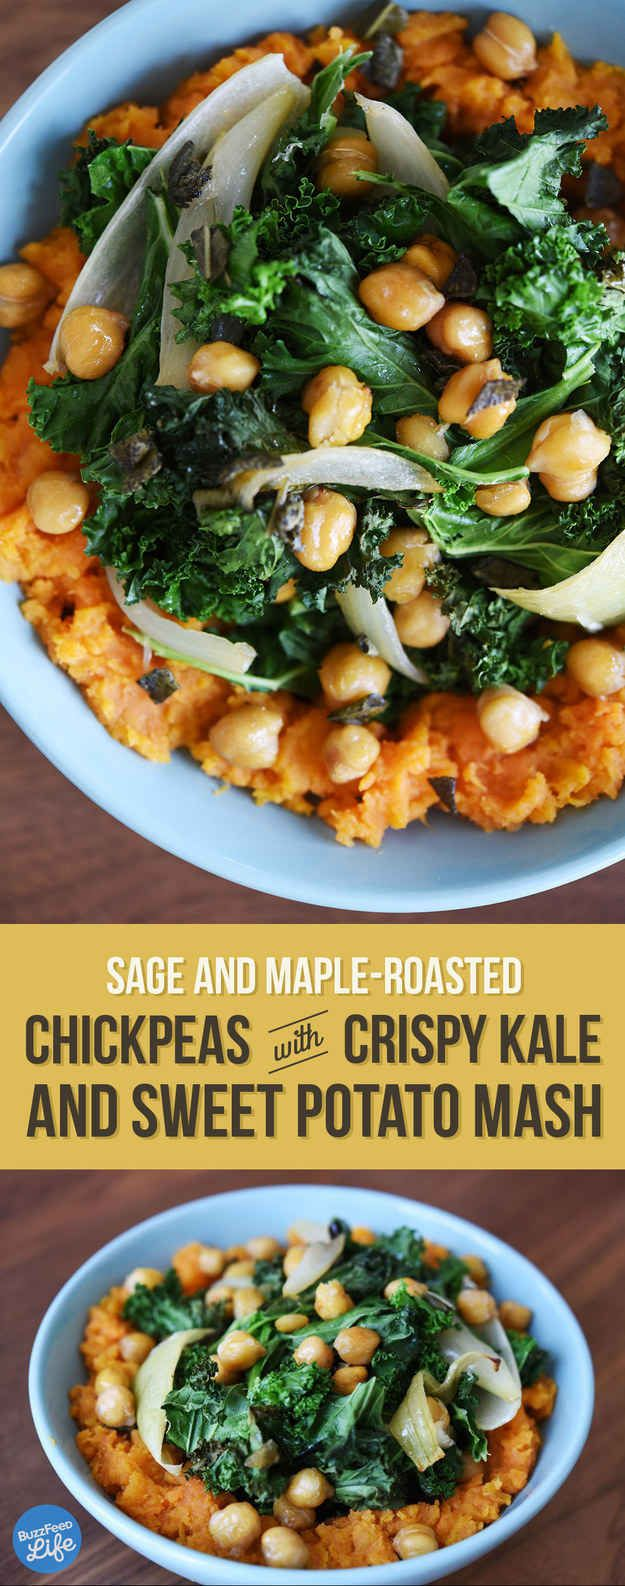 Chickpea and Crispy Kale over Mashed Sweet Potatoes